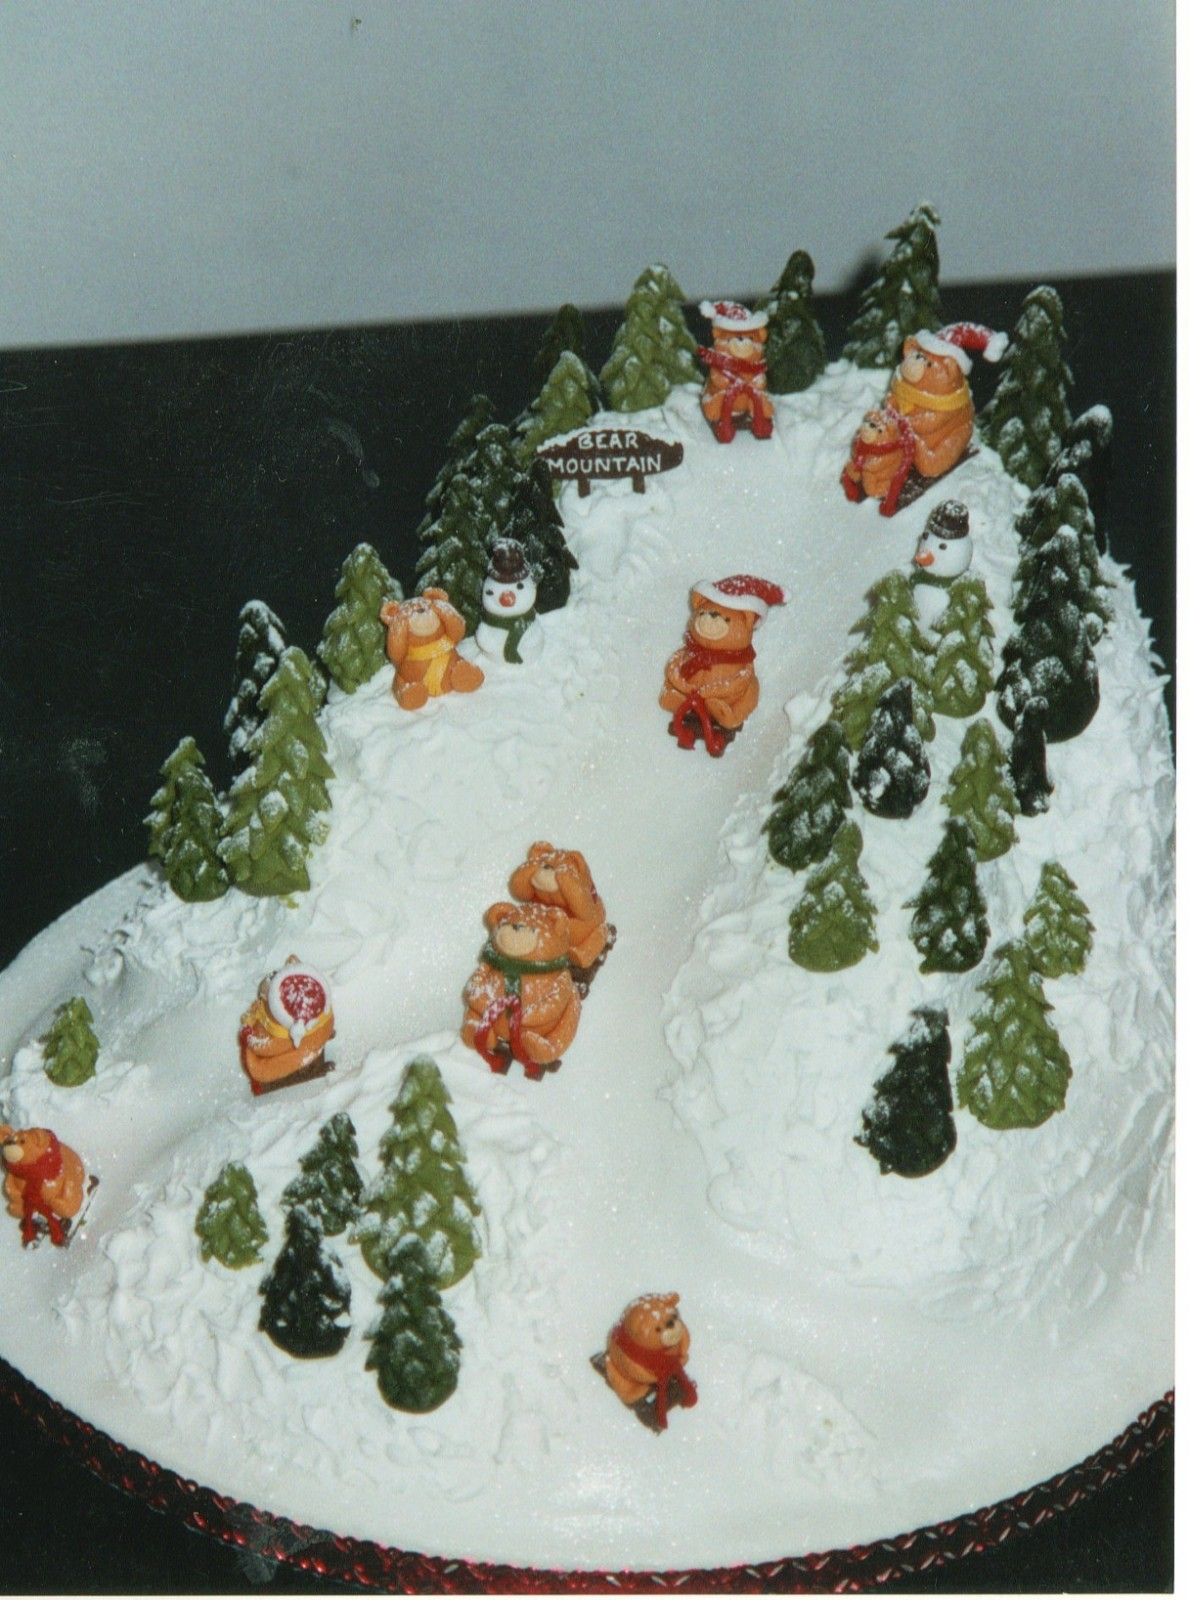 Novelty Christmas Cake Images : Bear Mountain Novelty Christmas Cake   Susie s Cakes